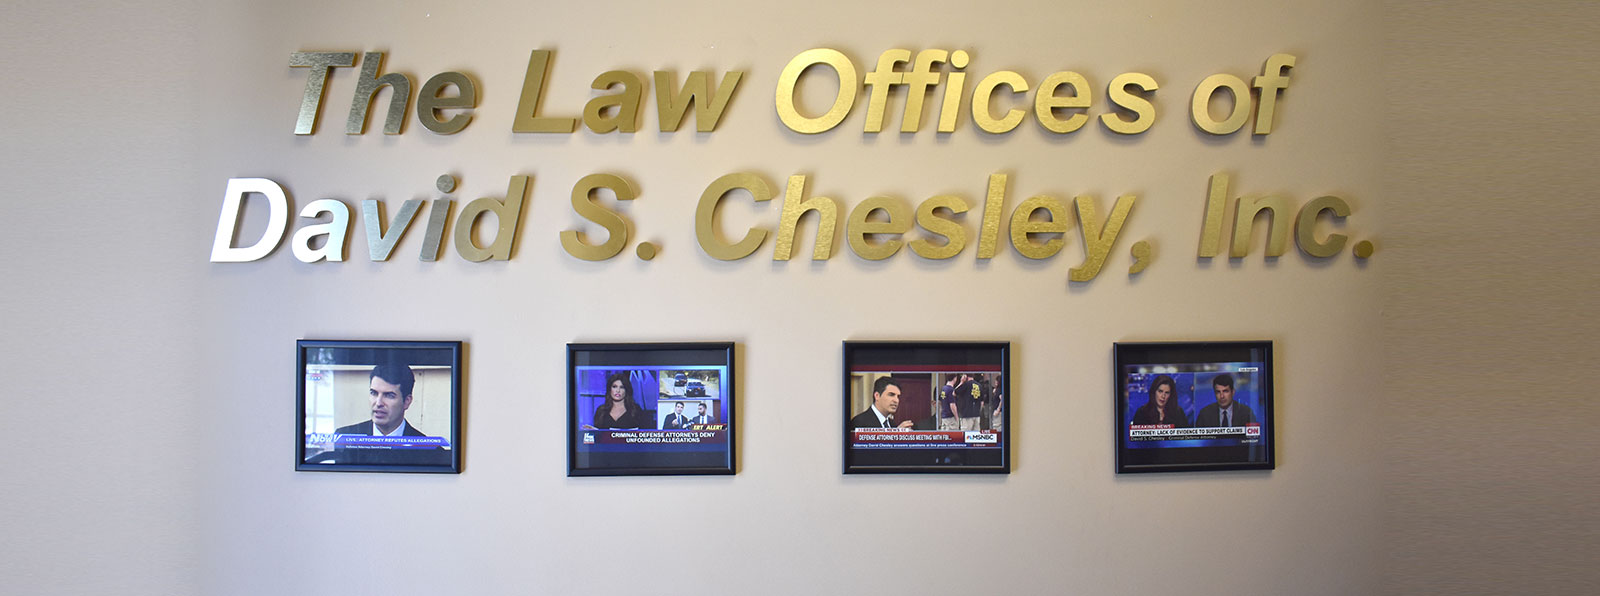 Law Offices of David S. Chesley, Inc.